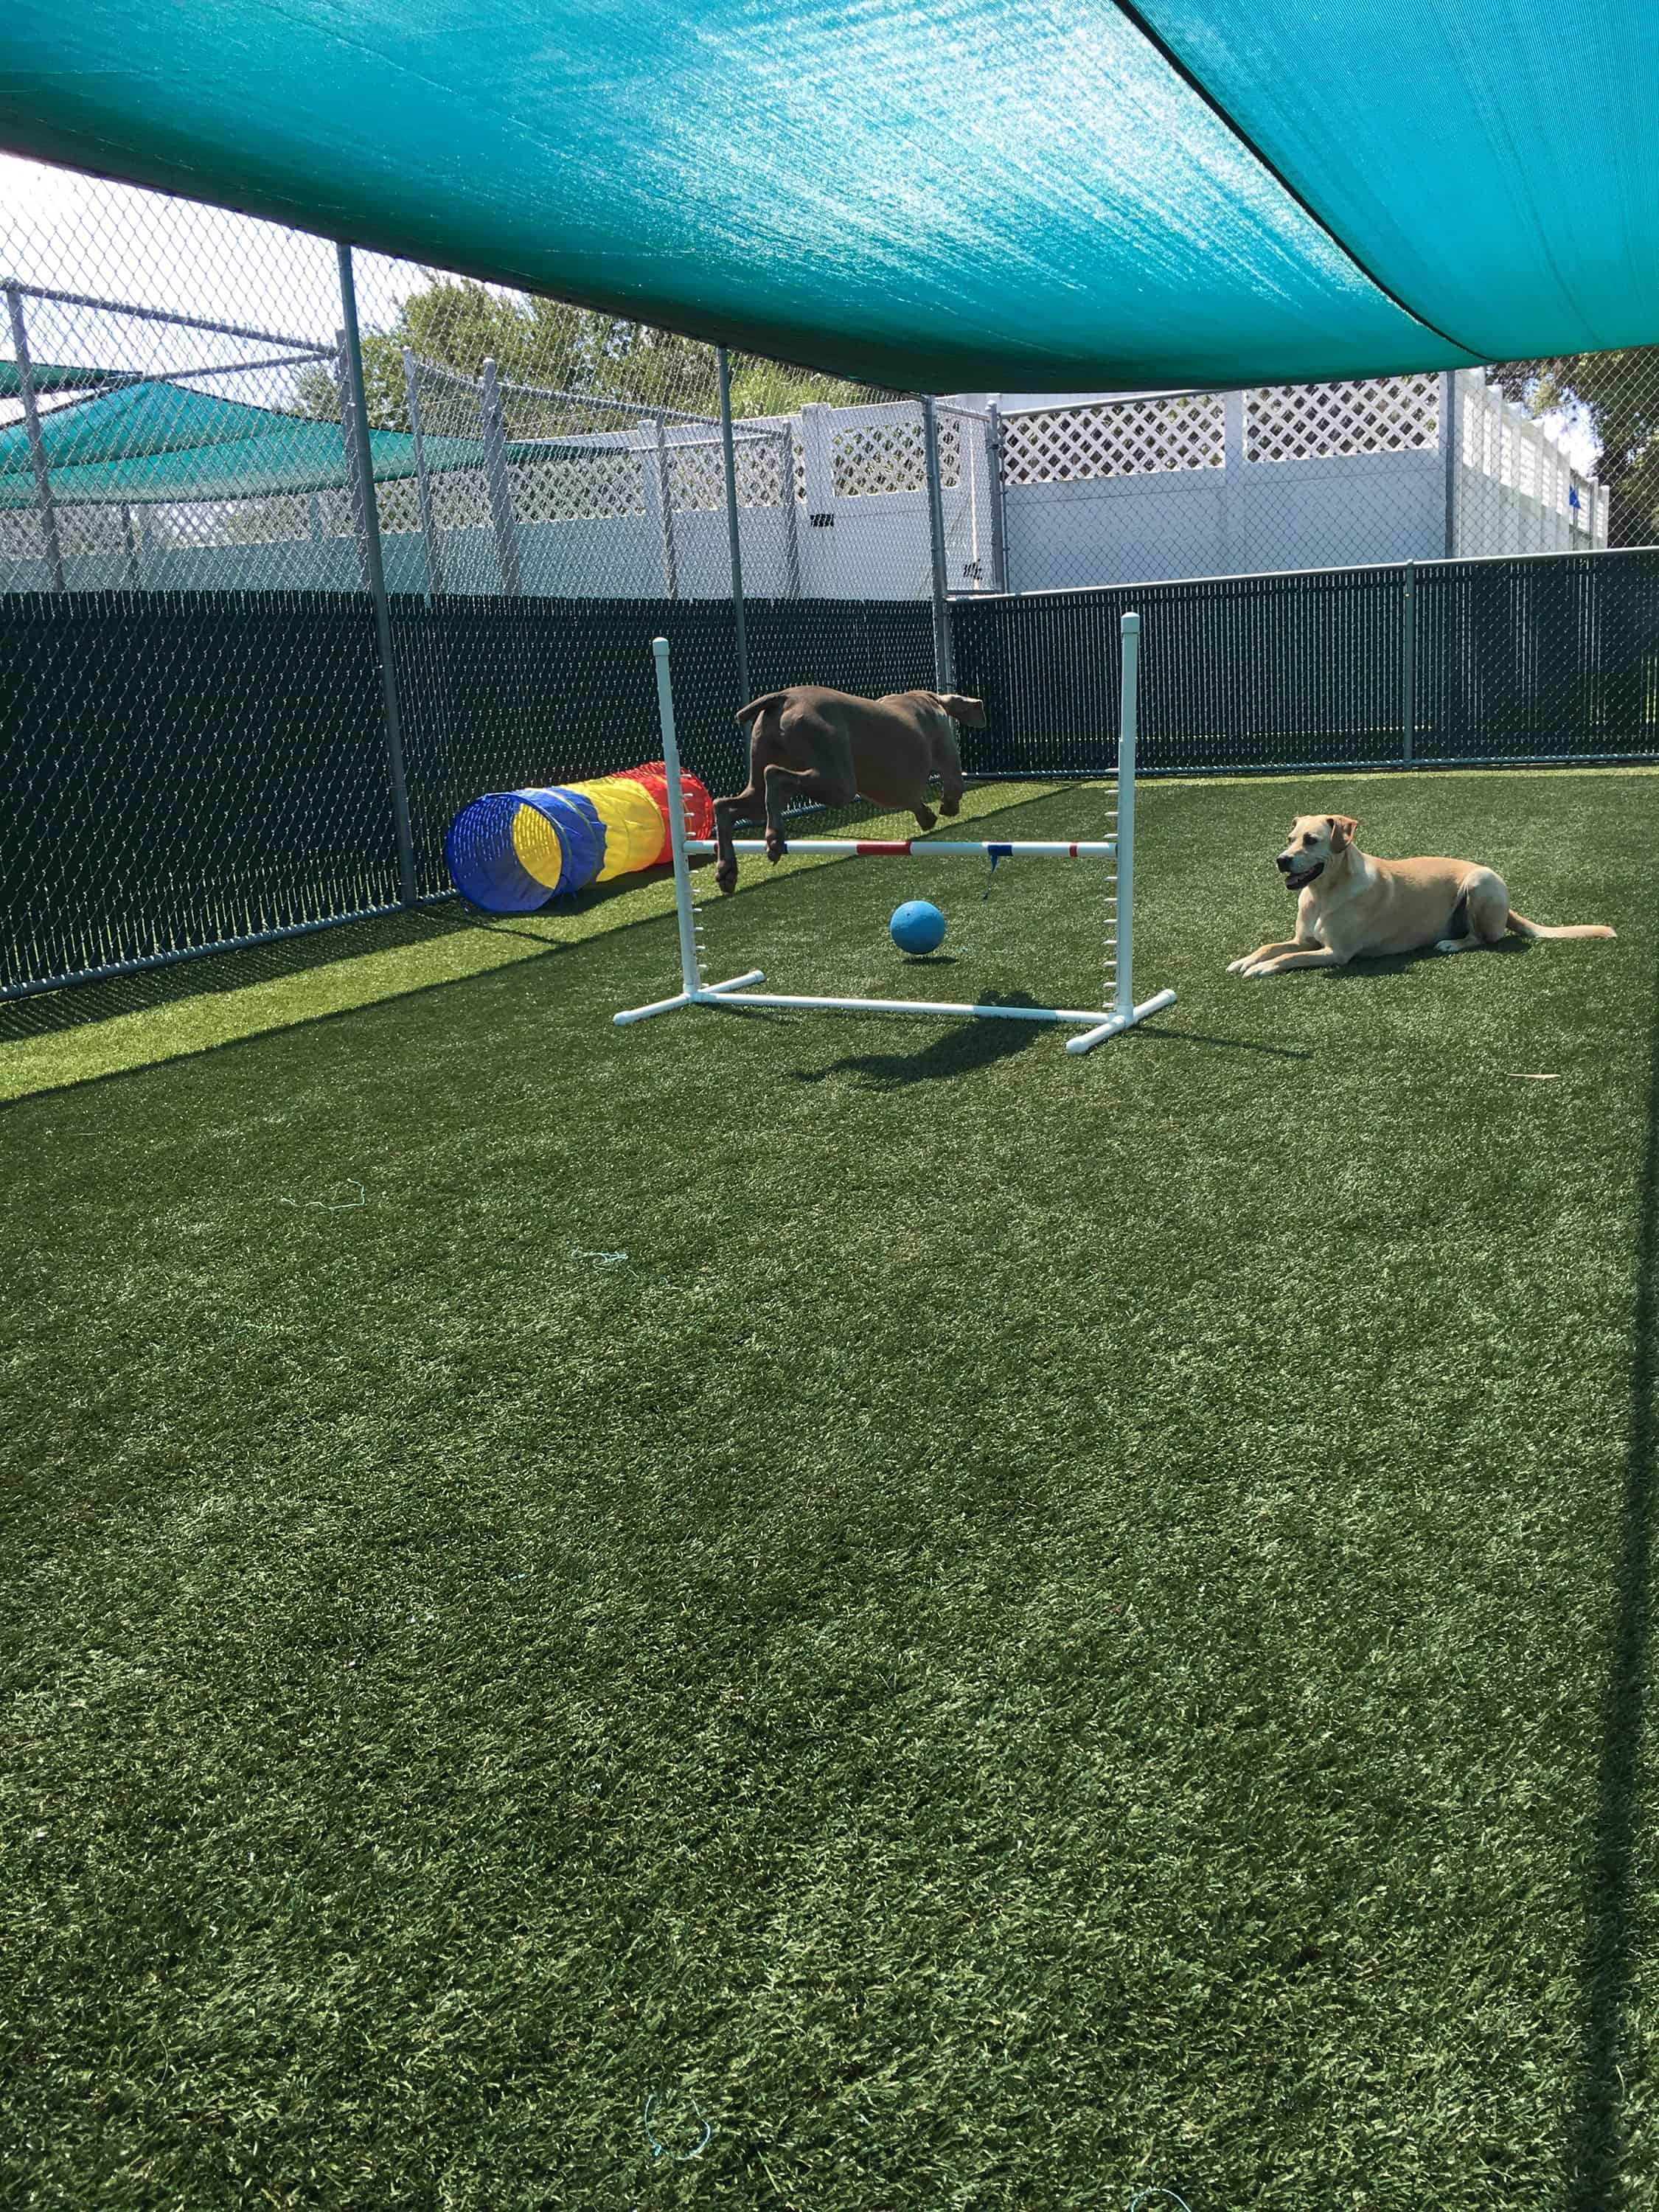 Weimaraner jumping at Bayside Pet Resort in Sarasota, FL